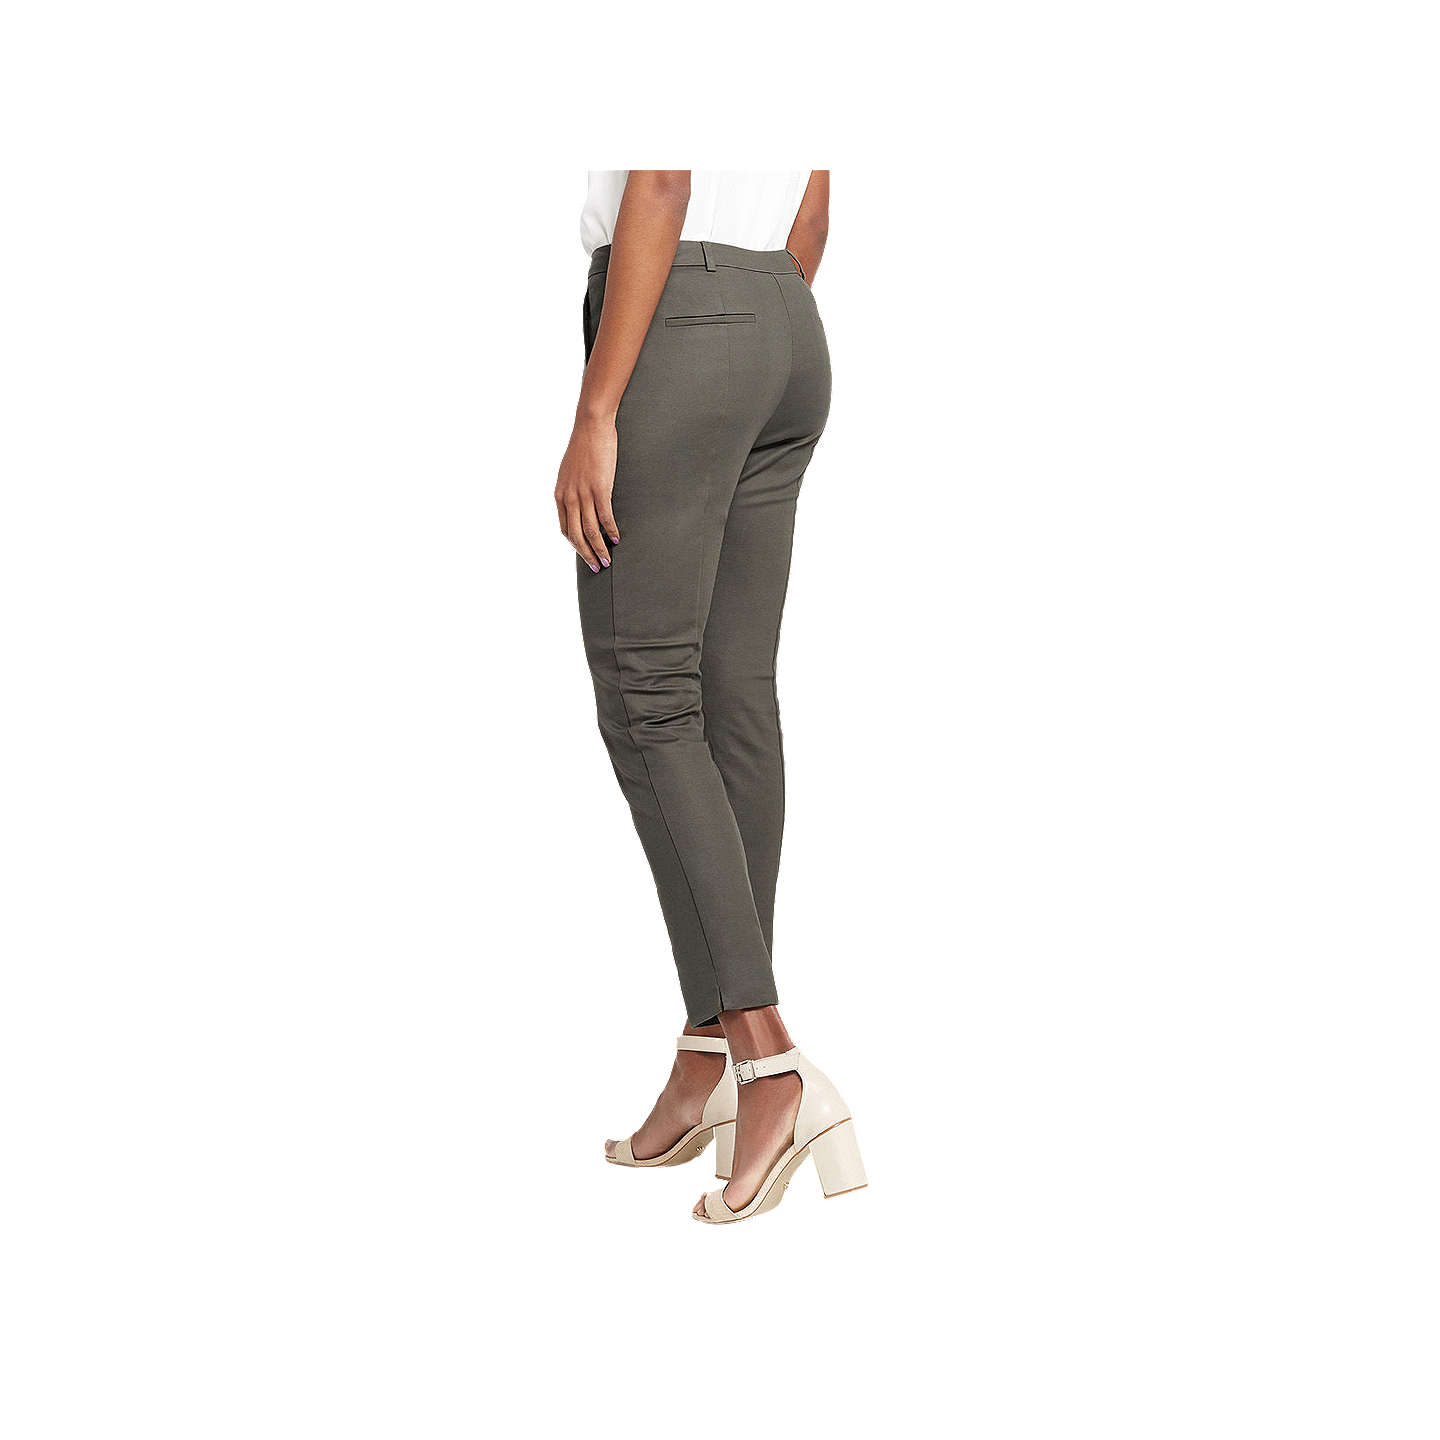 BuyOasis Compact Cotton Trousers, Khaki, 6 Online at johnlewis.com